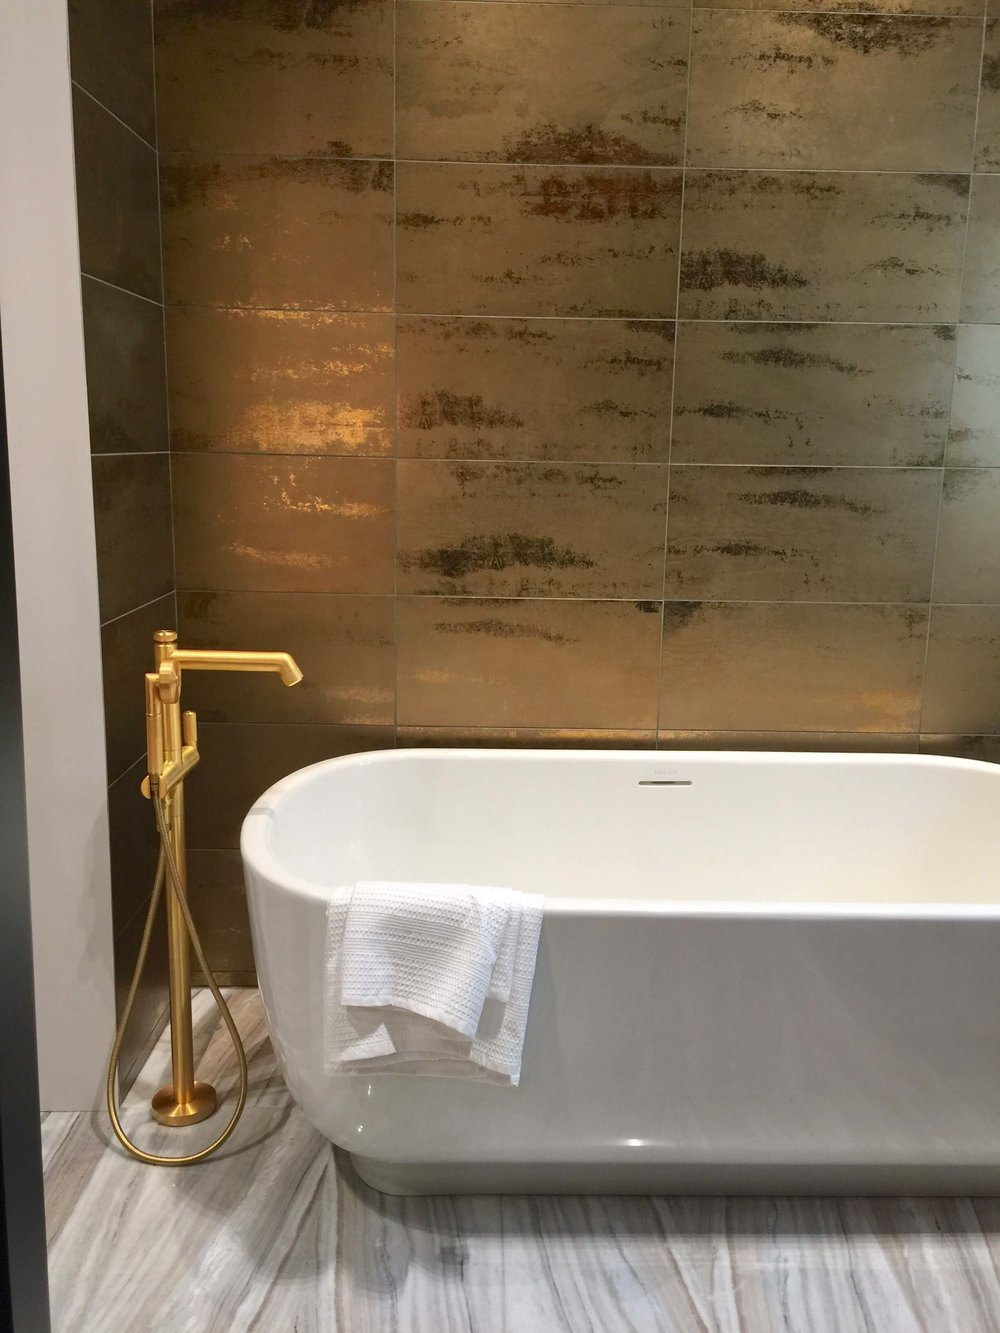 There was lots of gold and brushed brass at the show. Here at Ann Sacks, this tiled wall was a real stunner! #gold #goldtile #tile #bathroom